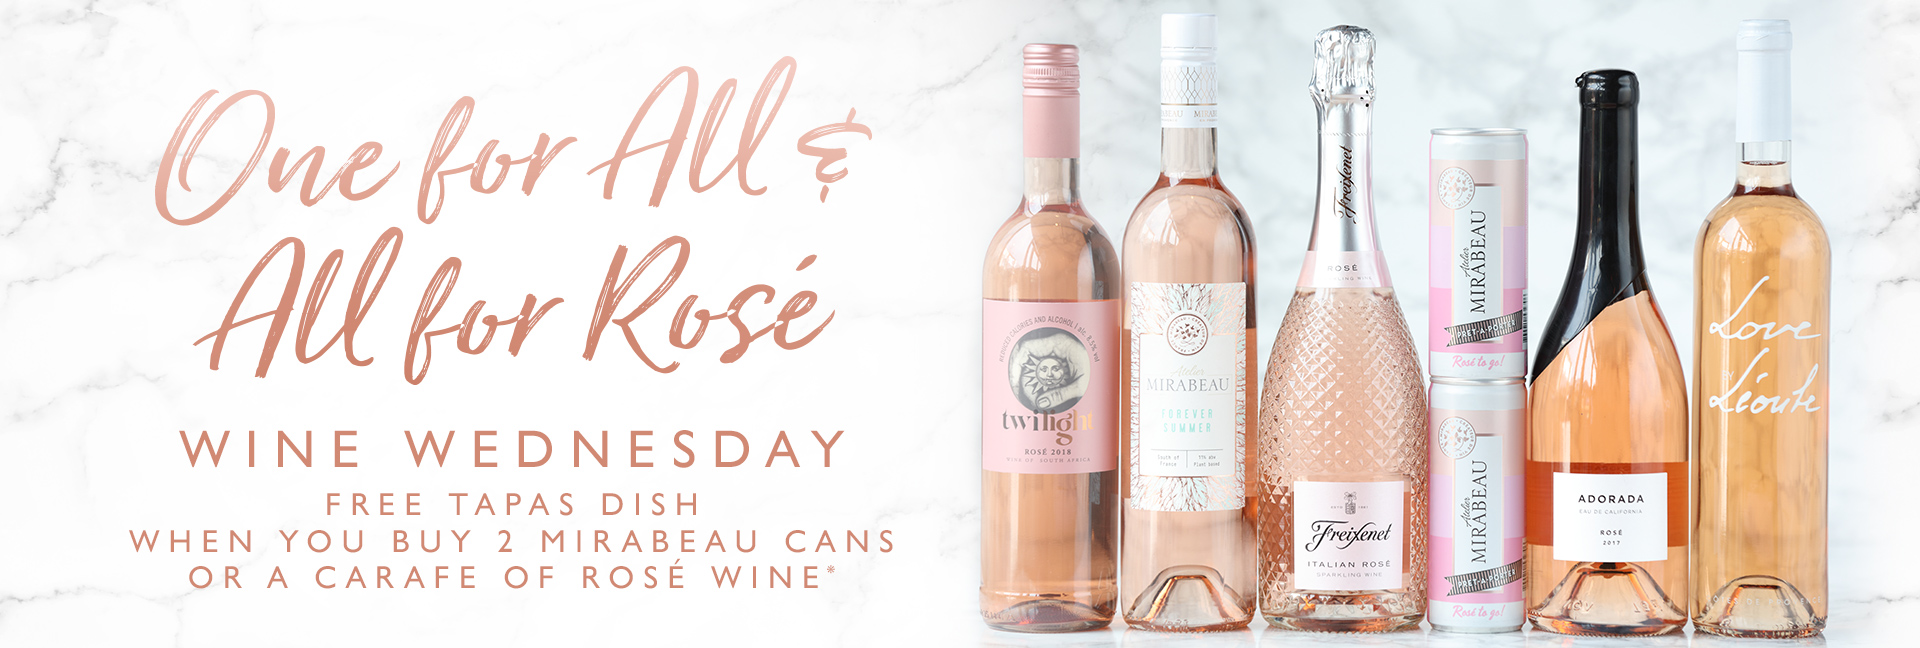 Wine Wednesday at All Bar One Worcester